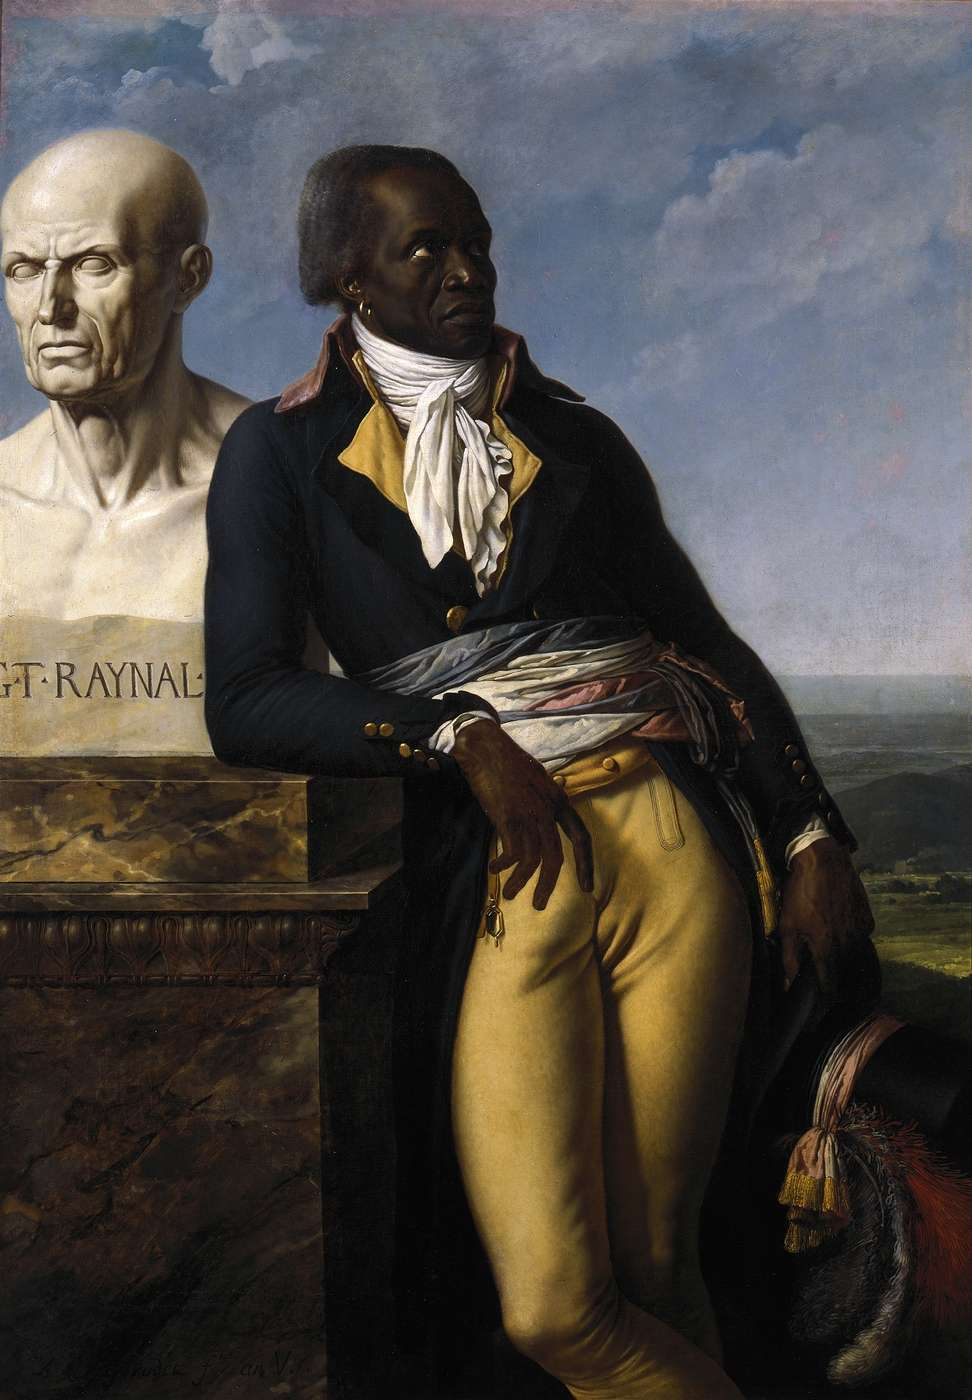 Anne-Louis Girodet Trioson, Jean-Baptiste Belley, député de Saint-Domingue à la Convention, 1797. Oil on canvas, 158 x 111 centimeters. Collection of the Château de Versailles. Courtesy of the Internet.